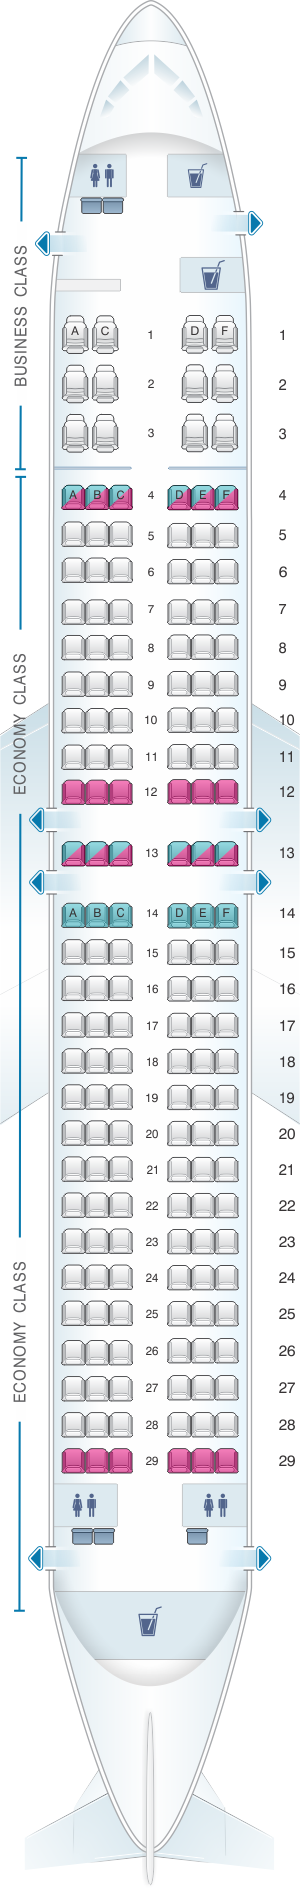 Seat map for Rossiya Airlines Boeing B737 800 168PAX V1